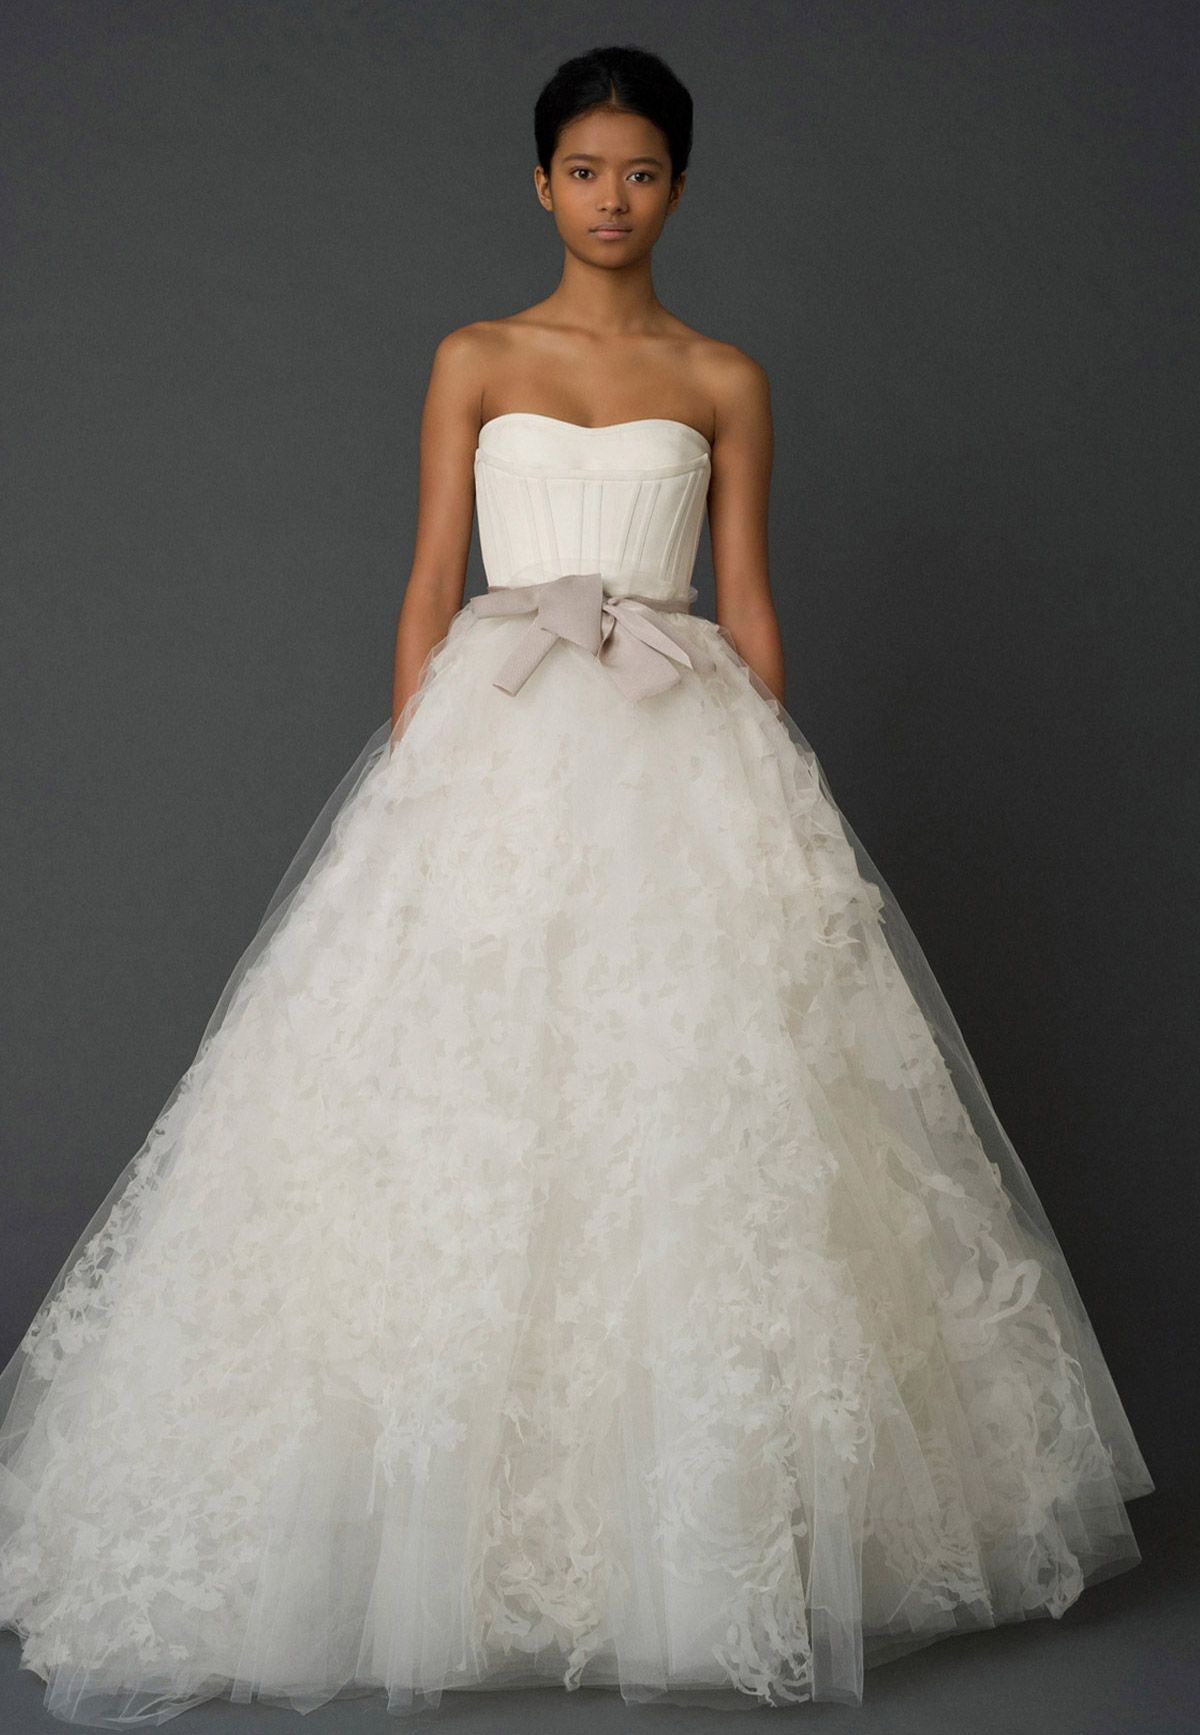 Vera Wang Hannah Size 4 Wedding Dress | Bridal gowns, Wedding dress ...